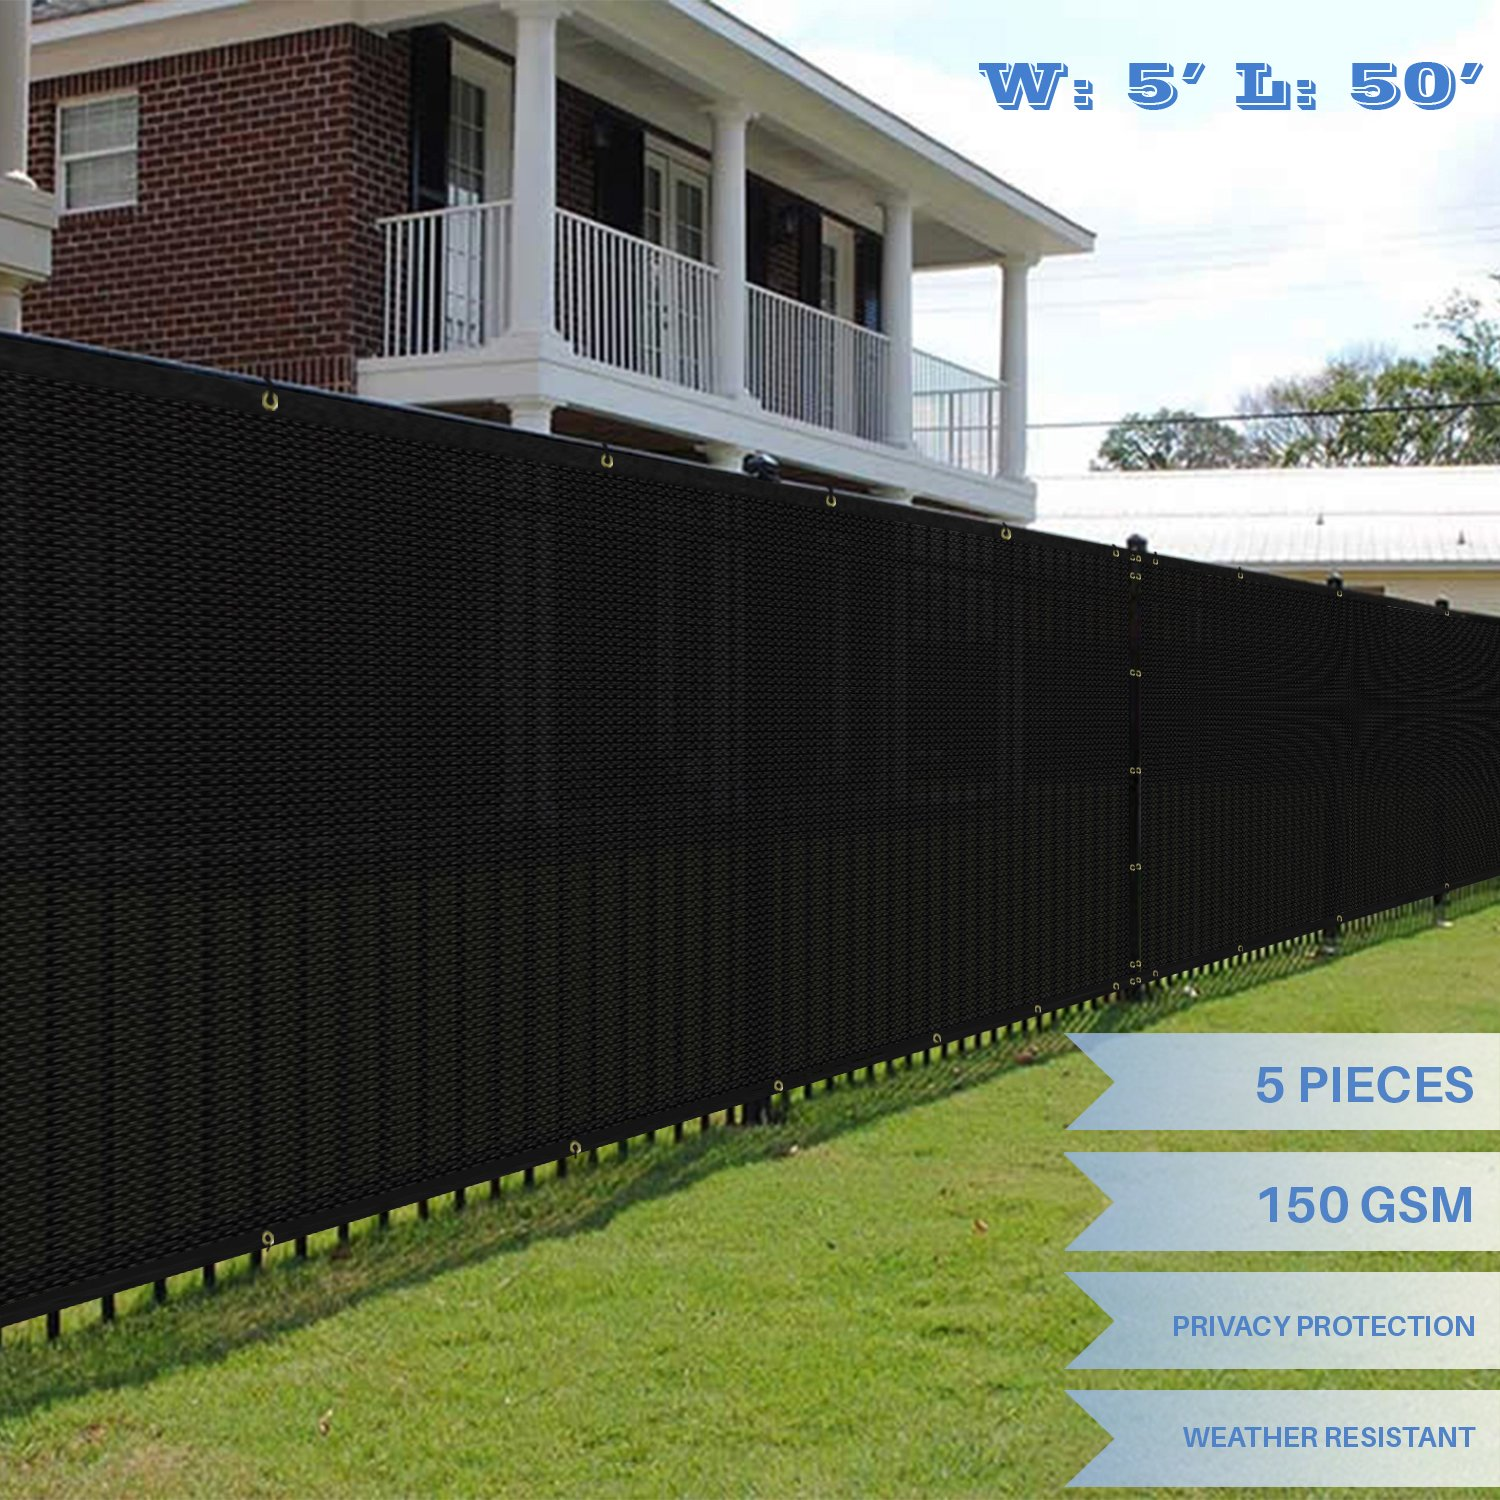 E&K Sunrise 5' x 50' Black Fence Privacy Screen, Commercial Outdoor Backyard Shade Windscreen Mesh Fabric 3 Years Warranty (Customized Sizes Available) - Set of 5 by E&K Sunrise